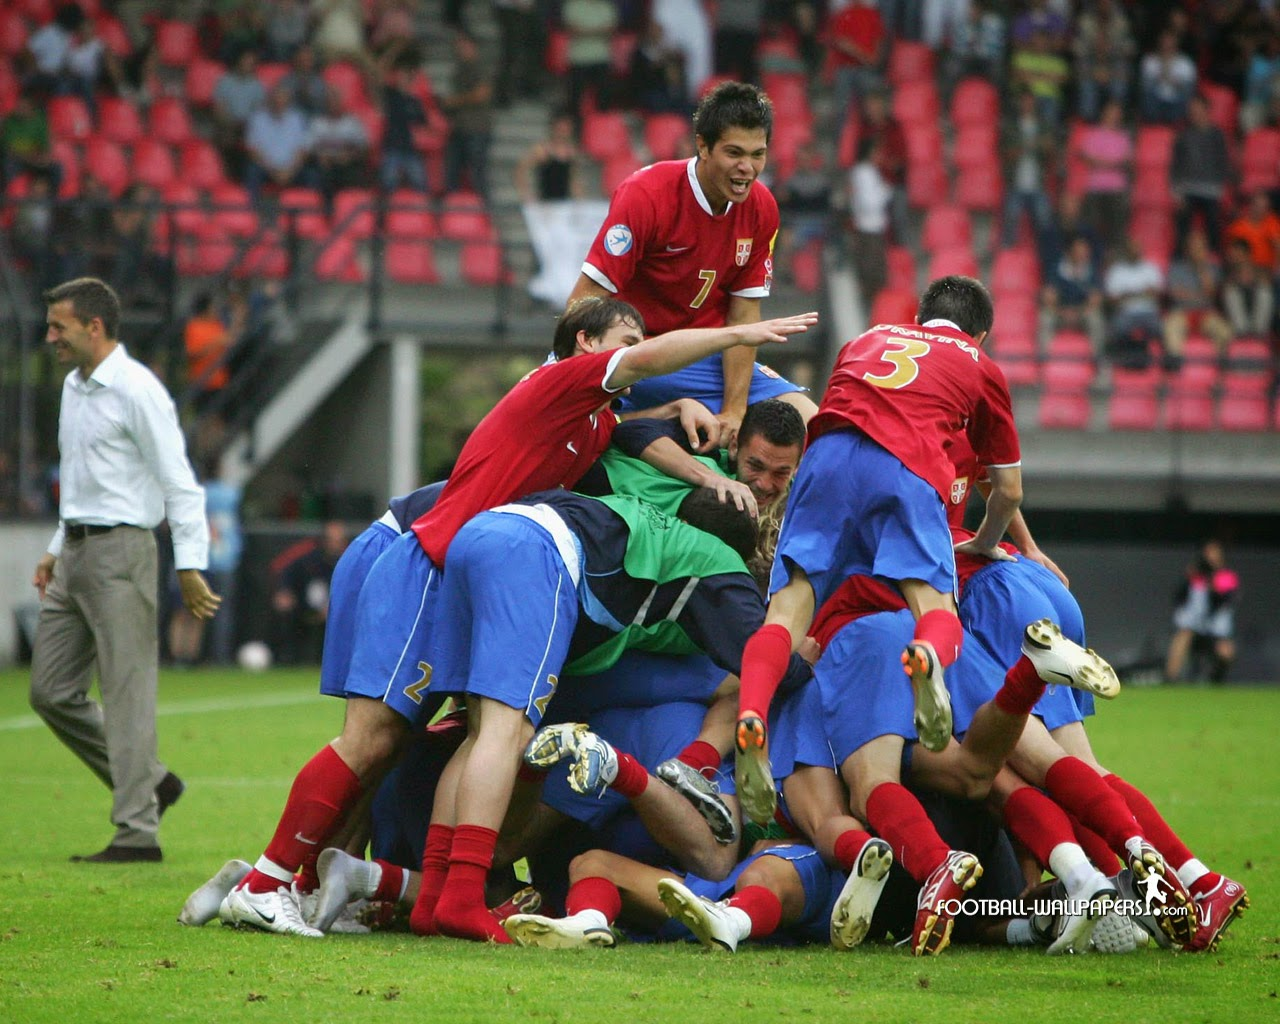 http://www.football-cover.com/football_wallpaper/celebrationserbia_serbia_football_association.jpg